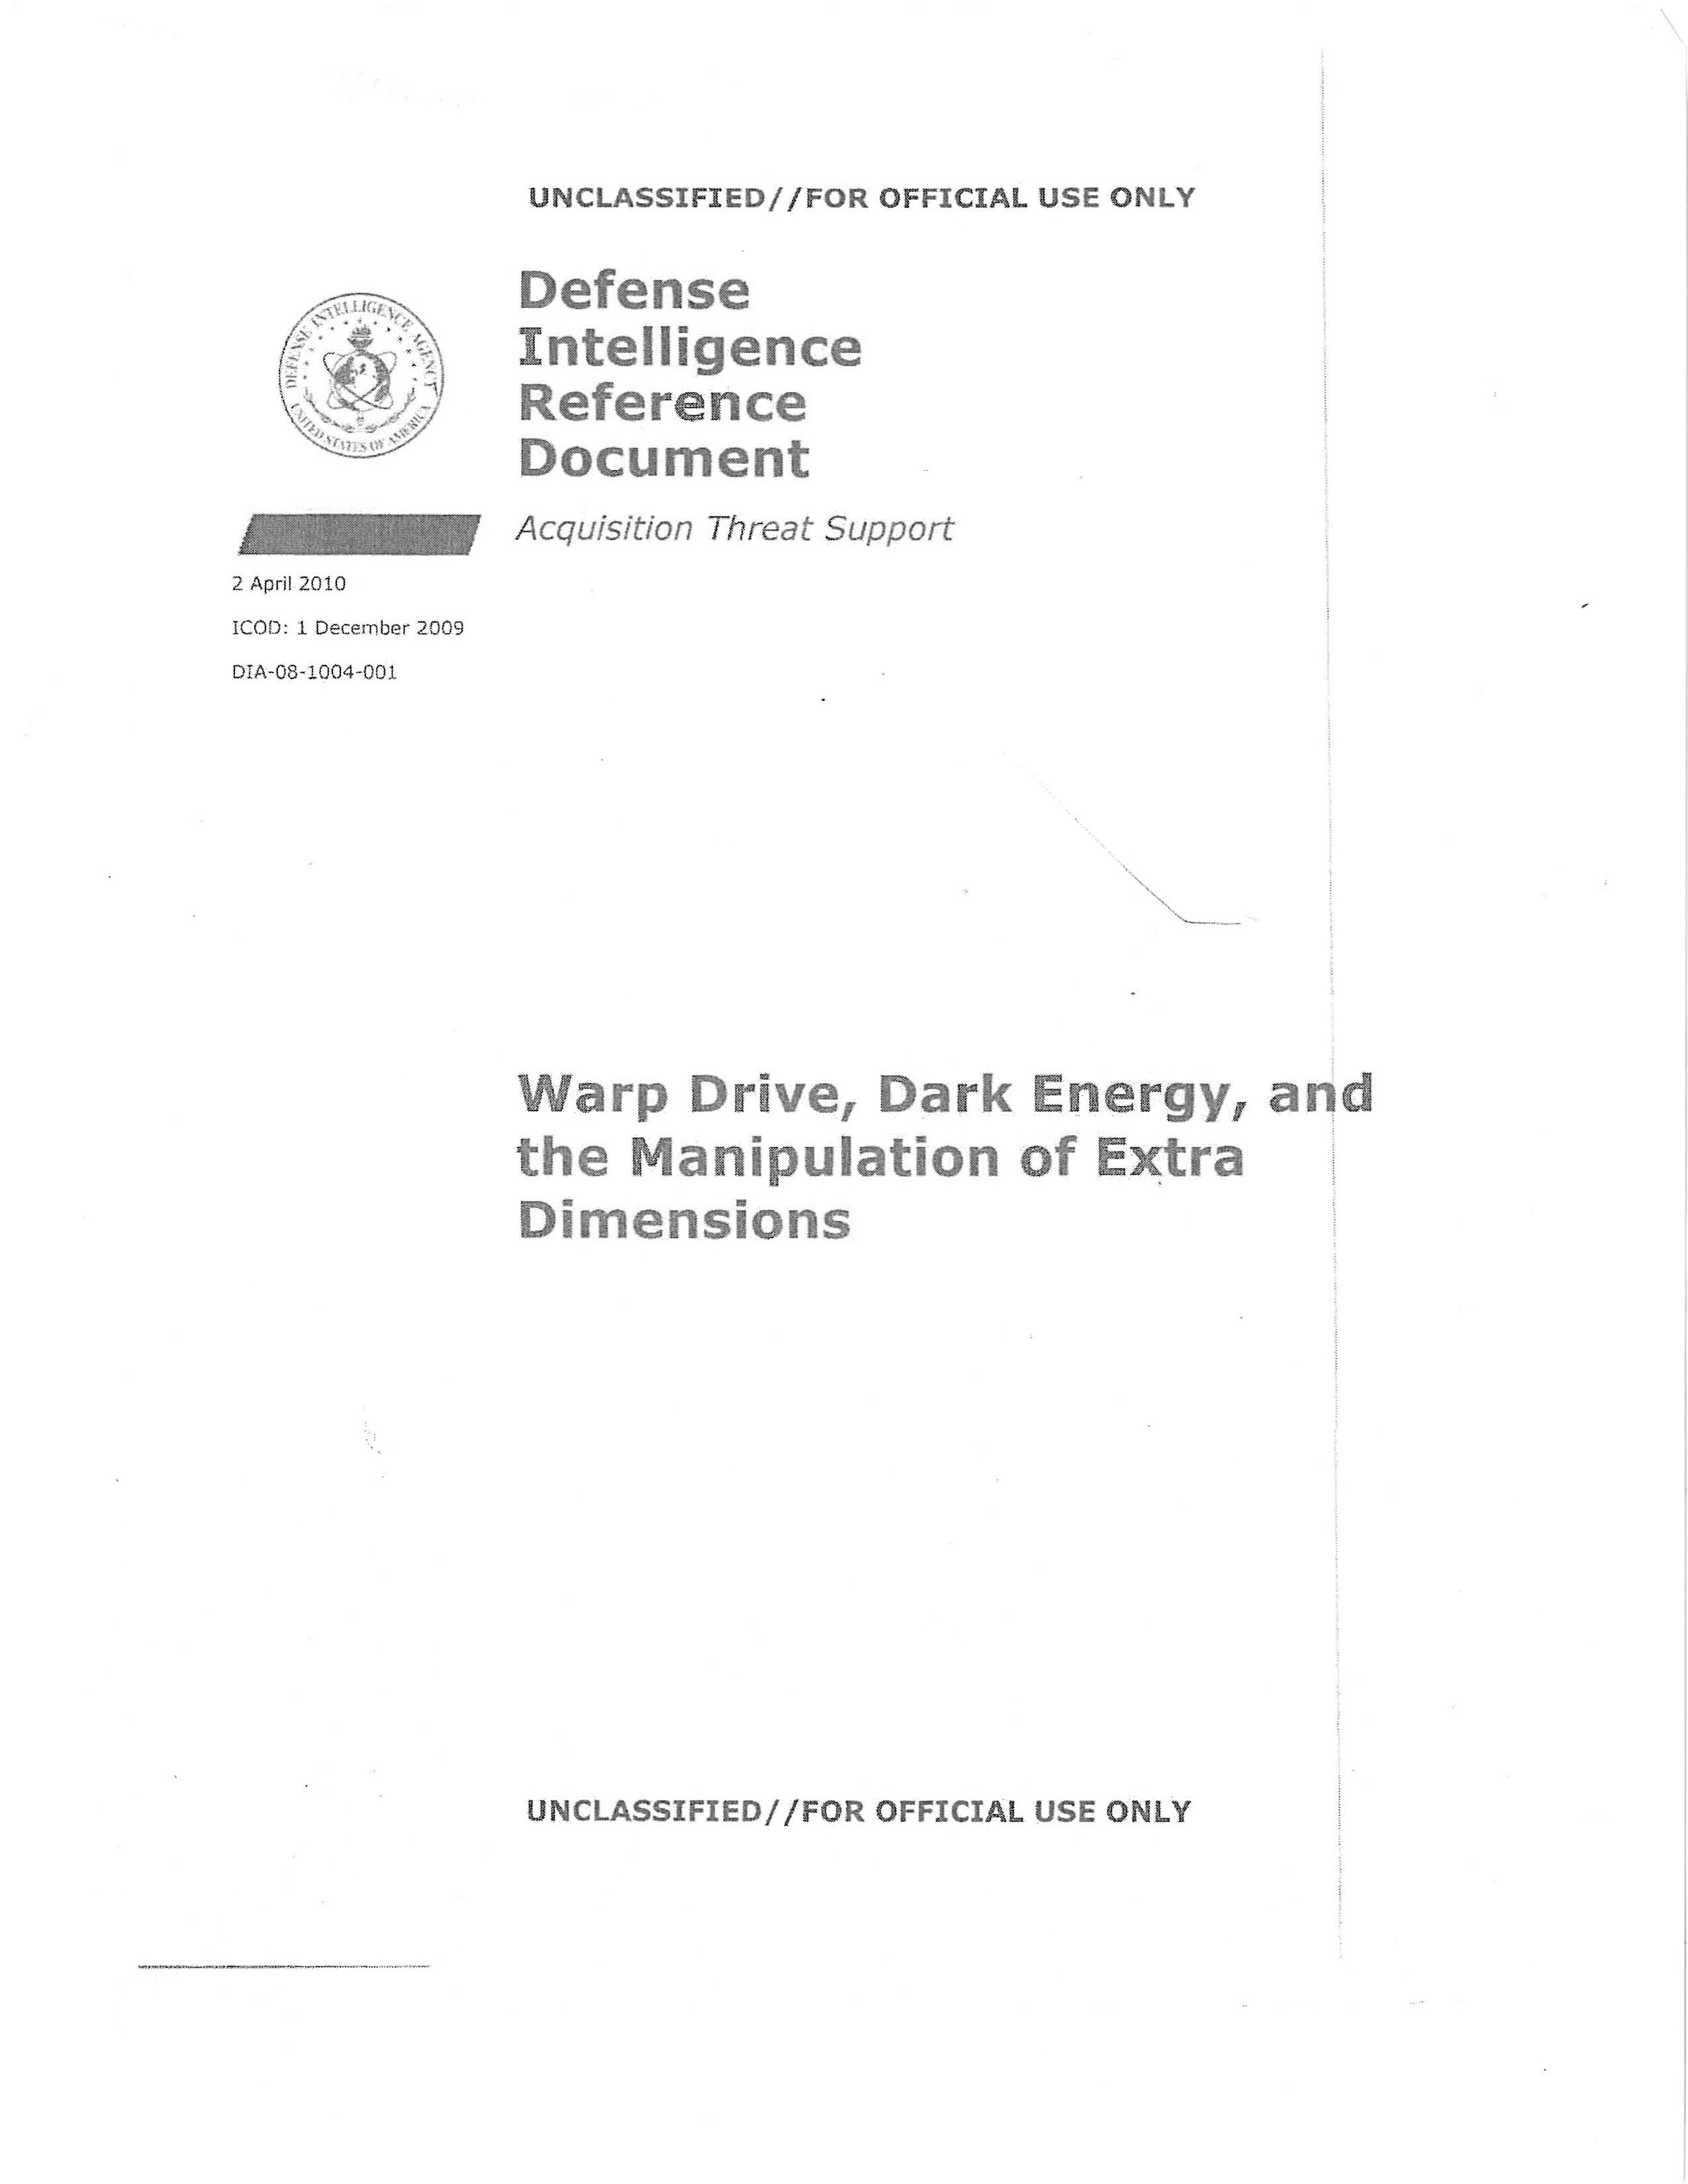 #19 - Warp Drive, Dark Energy & Dimensions